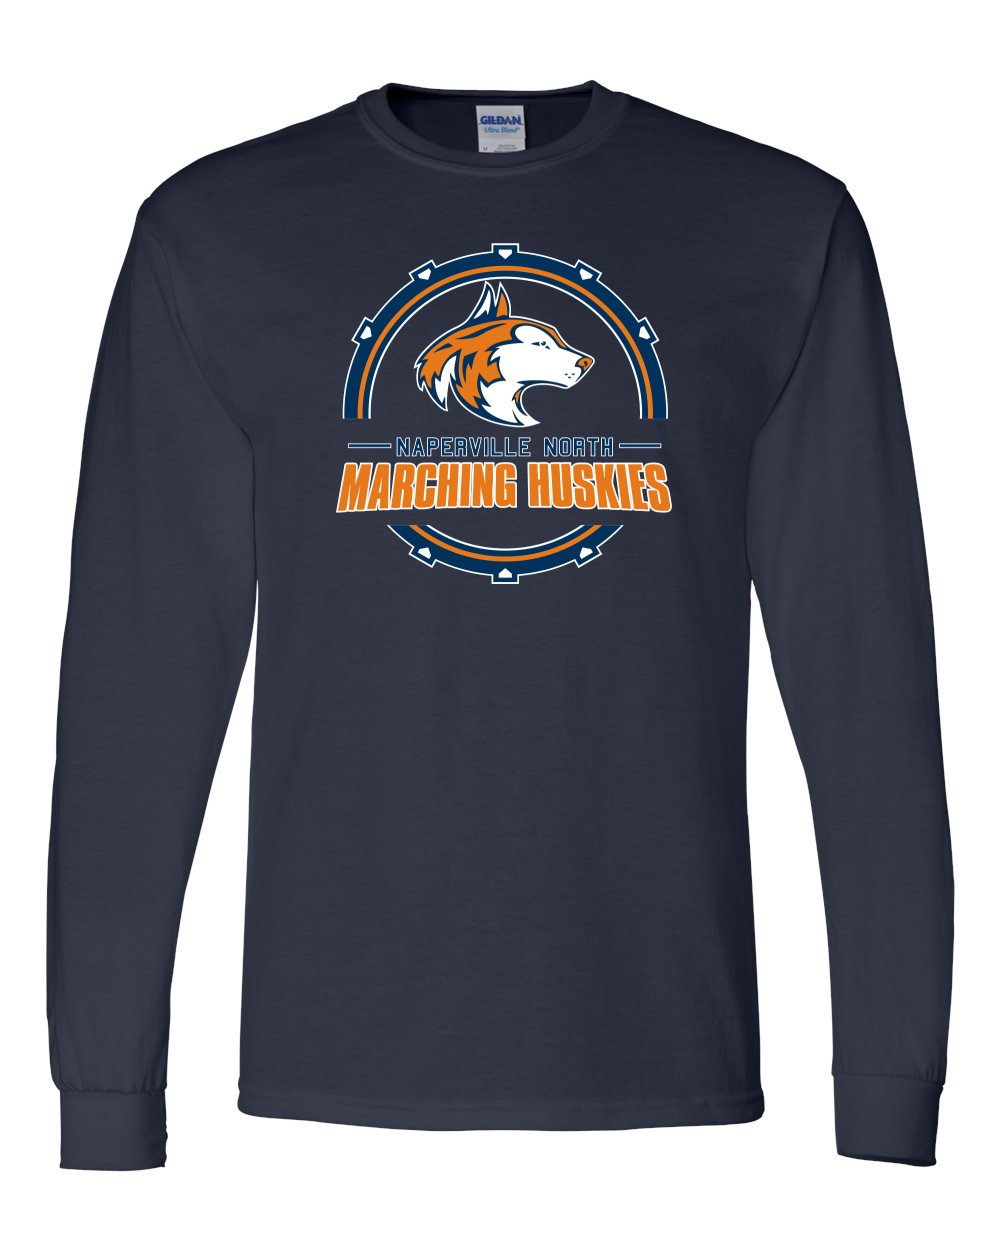 NNHS Marching Band Long-Sleeve T-Shirt